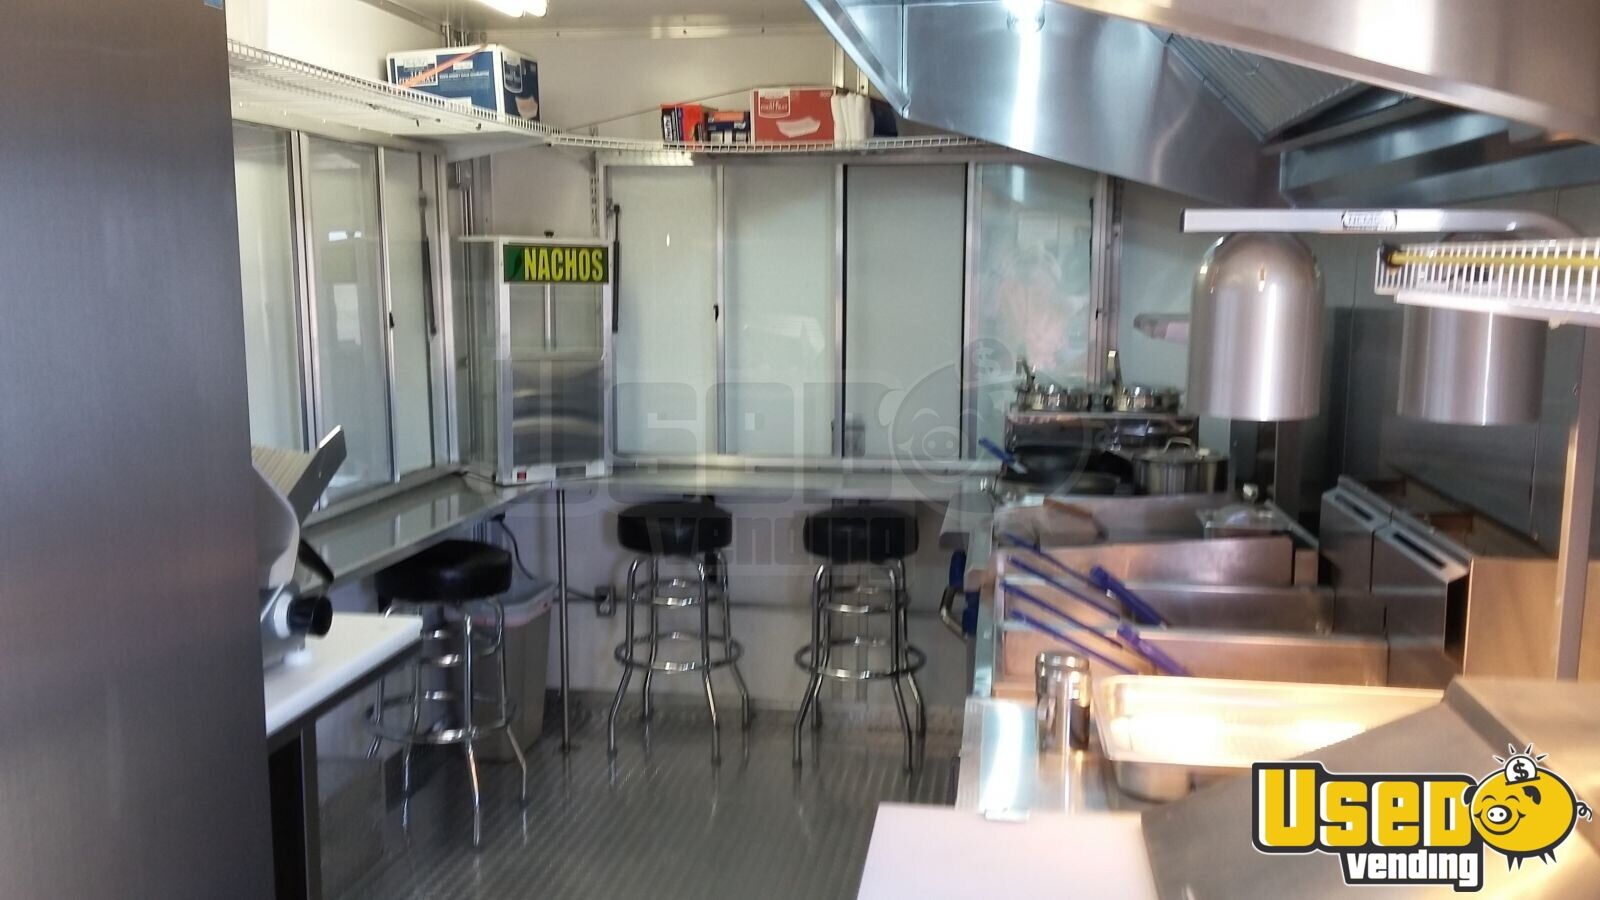 2015 Bestbilt Kitchen Food Trailer Concession Window Texas for Sale - 3